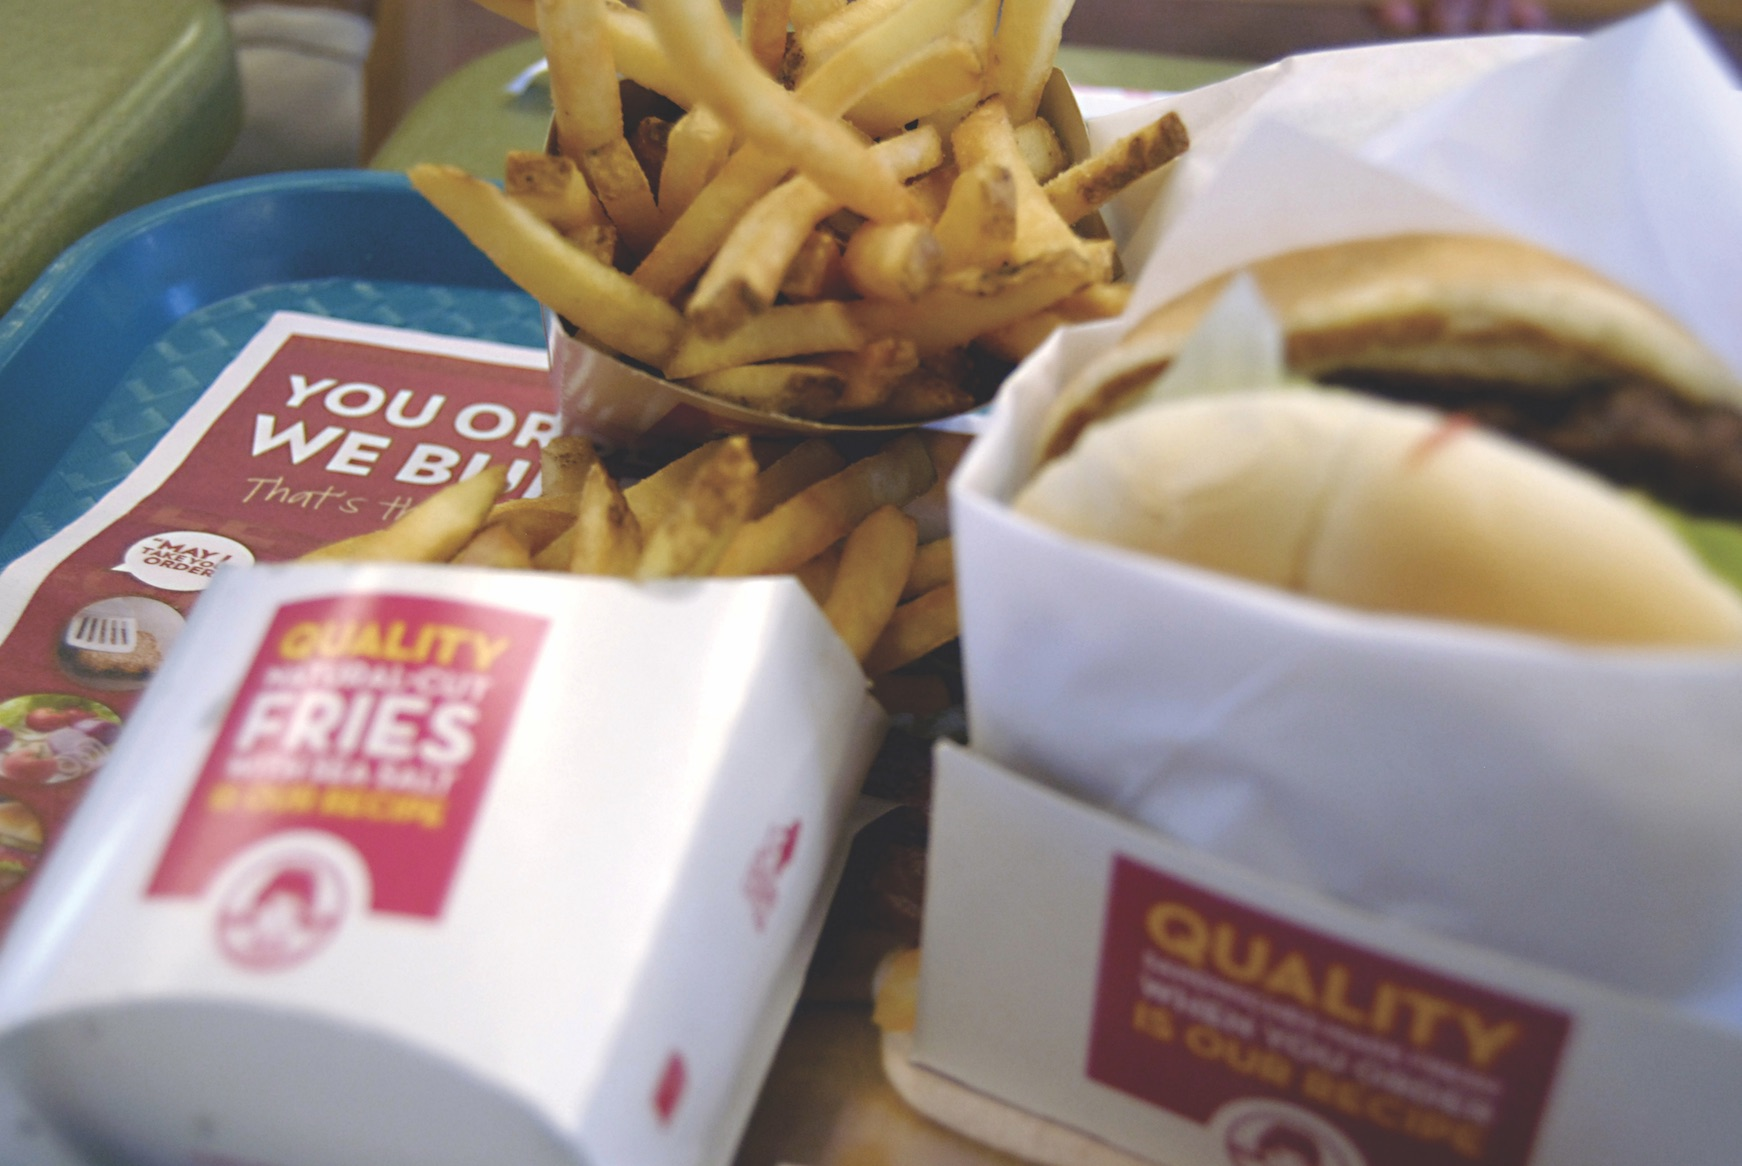 Tray of Wendy's fast food fries and burger